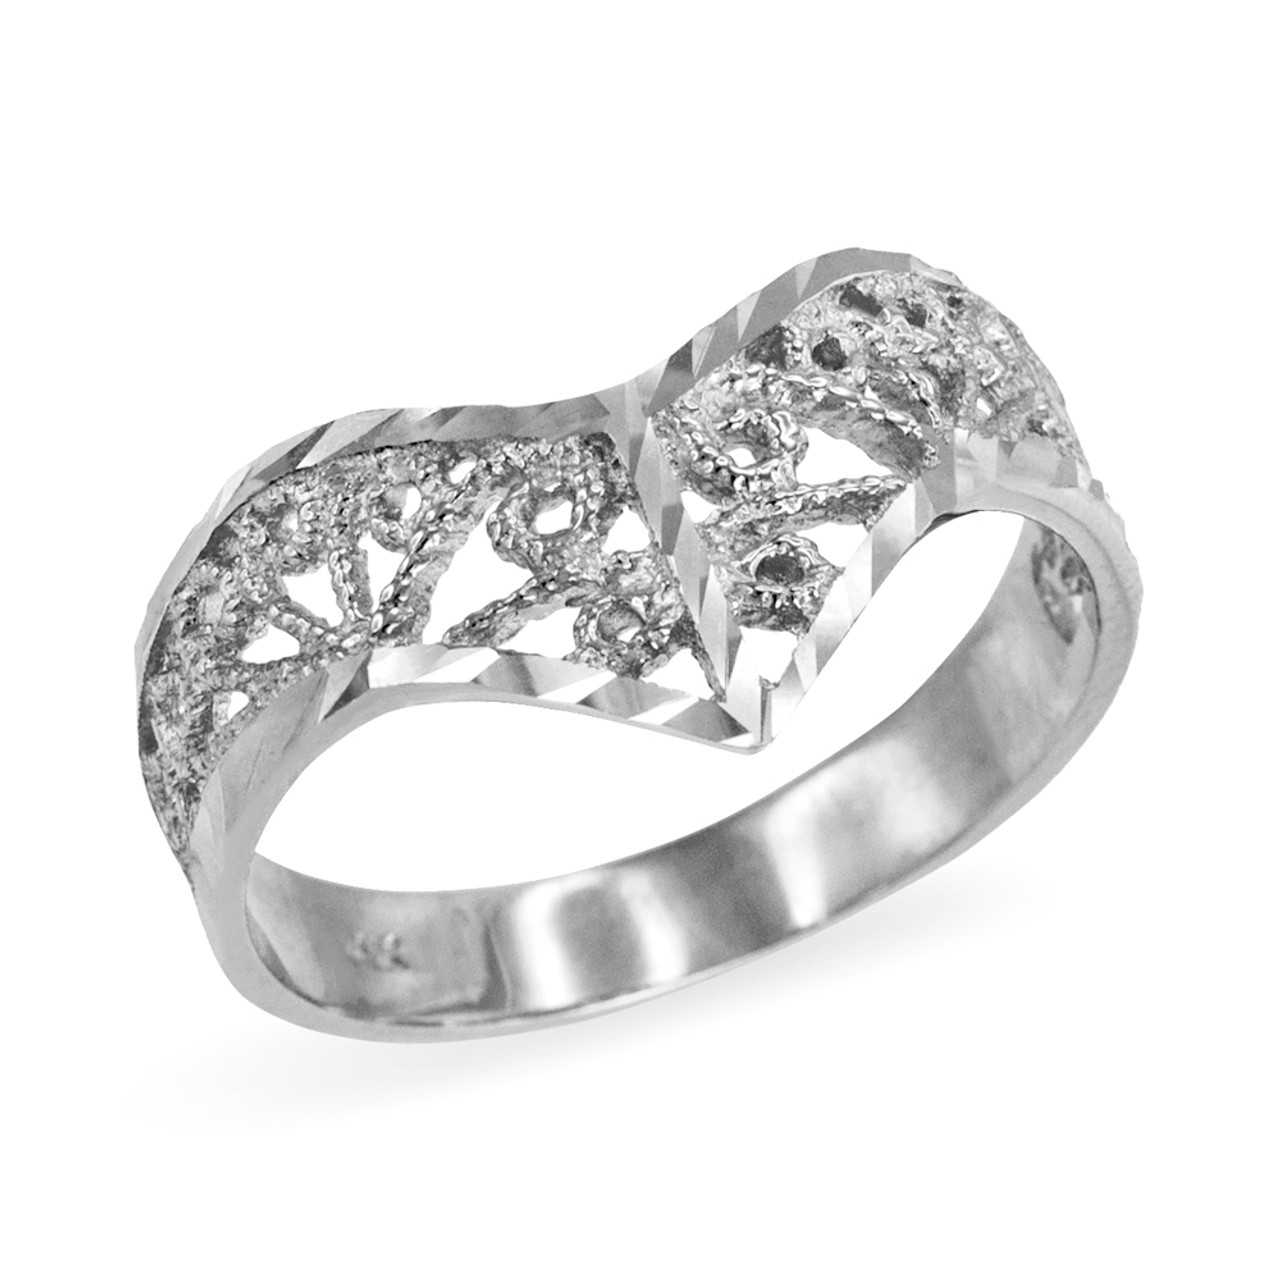 filigree rings to buy front online wbp today floral wedding product ring